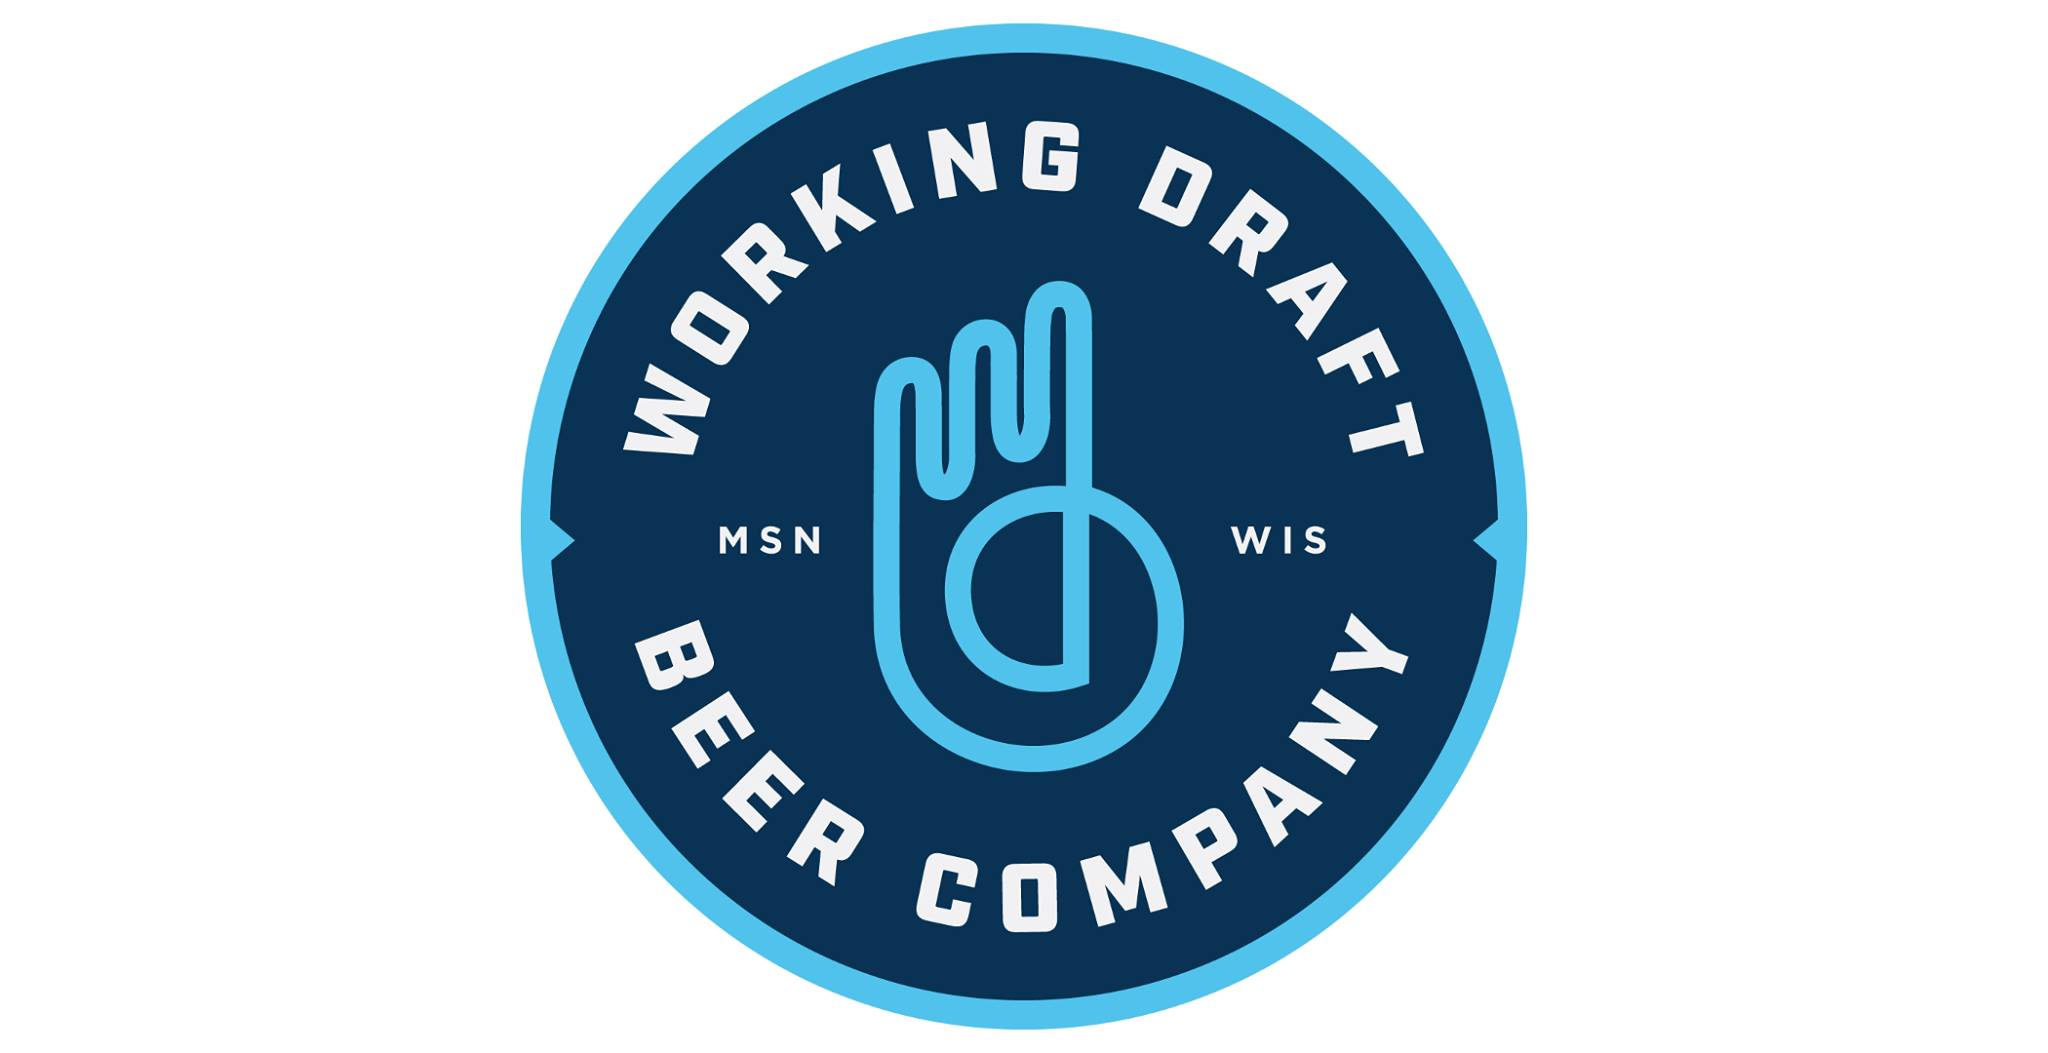 Working Draft Tappings – New Madison Brewery Launch